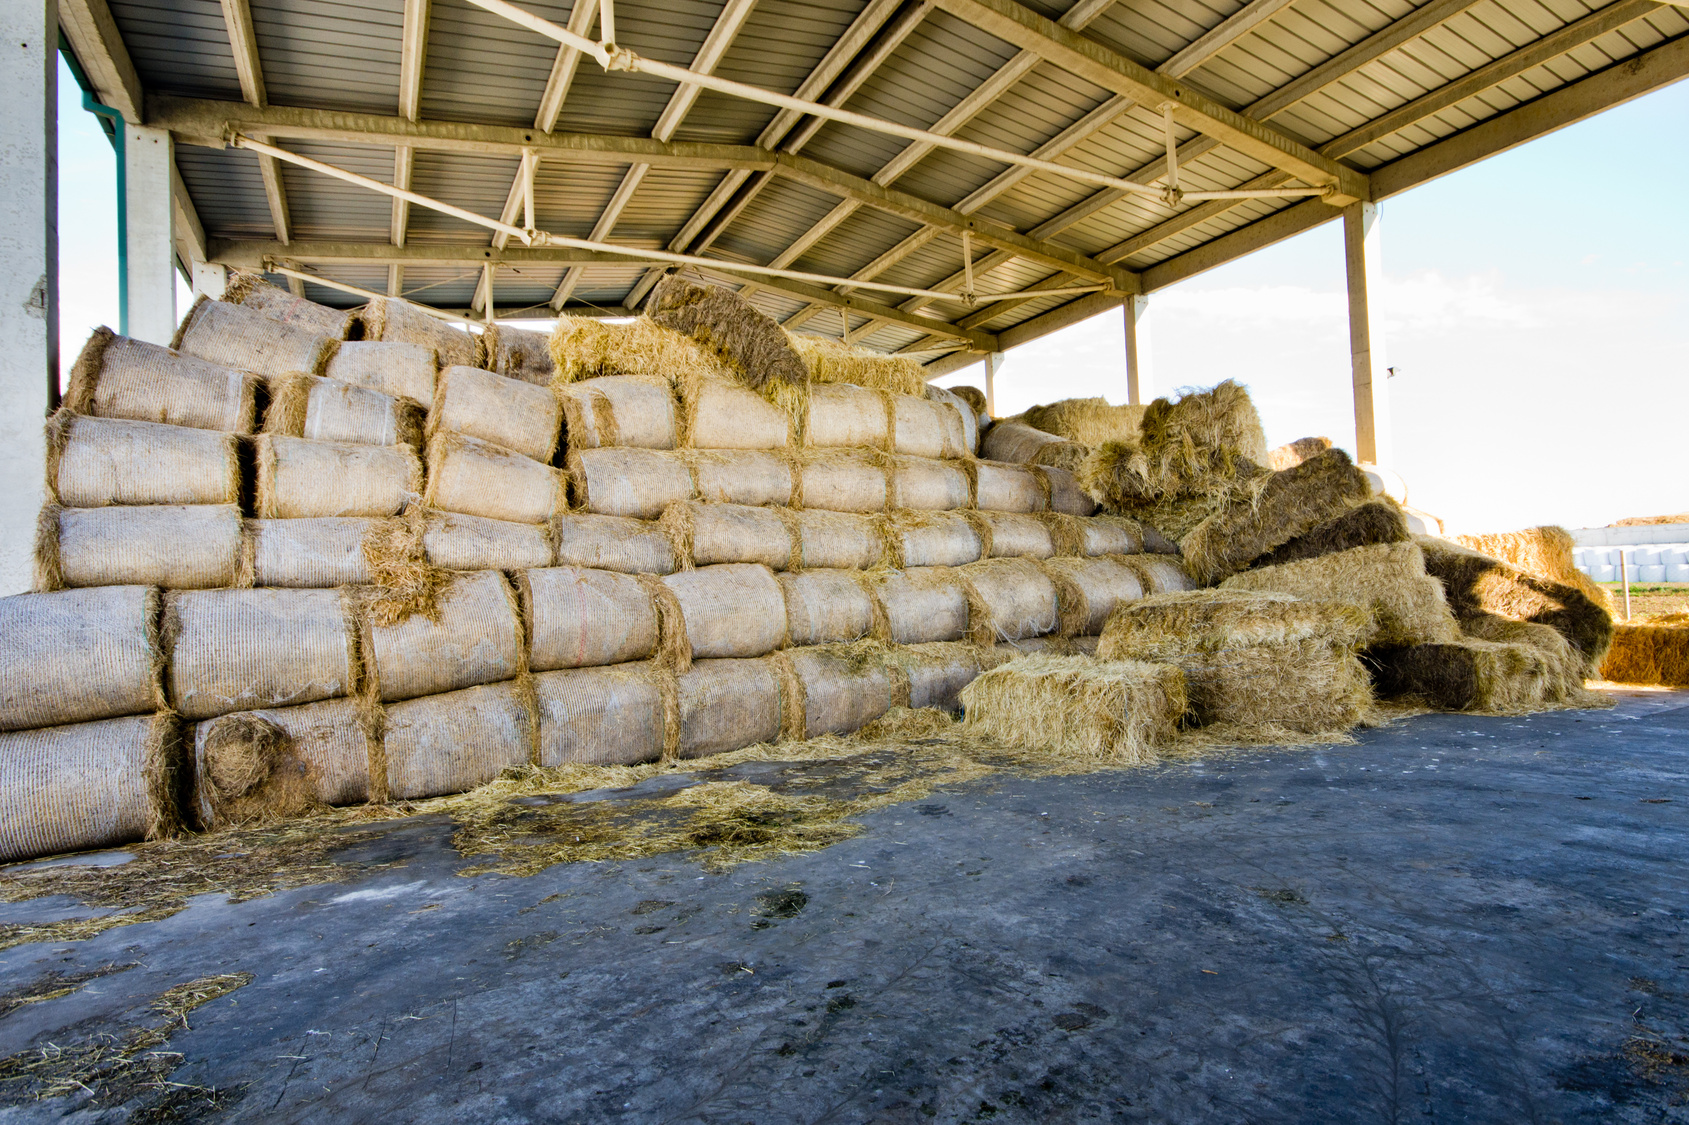 finding a way to shelter hay from the effects of the elements is an important part of preserving it for when you need it.